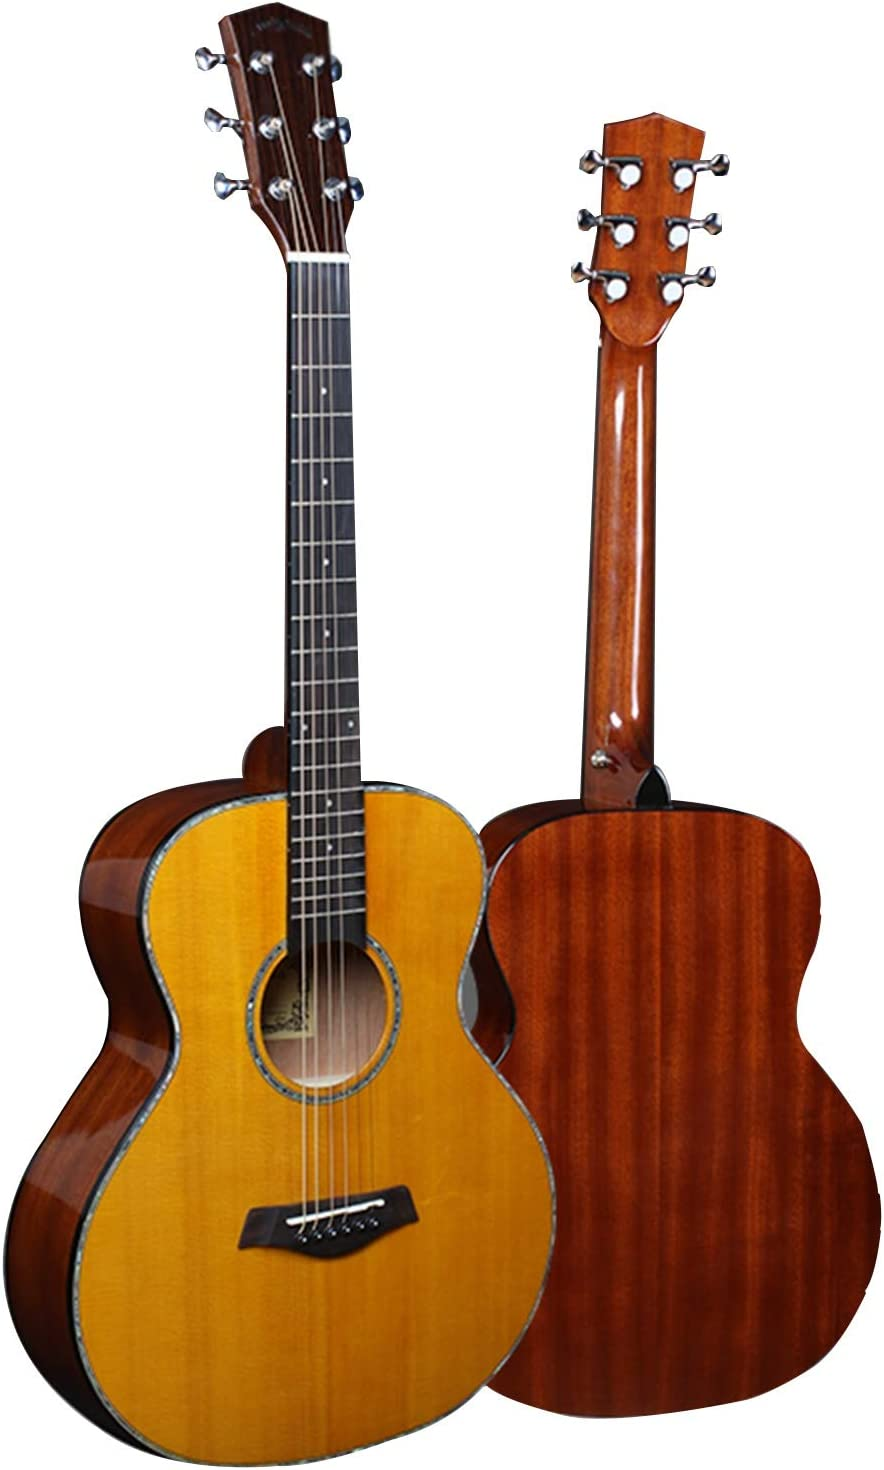 FENGSR 36-inch Dealing full price reduction Acoustic Guitar Student Max 66% OFF Bag Sta Handmade